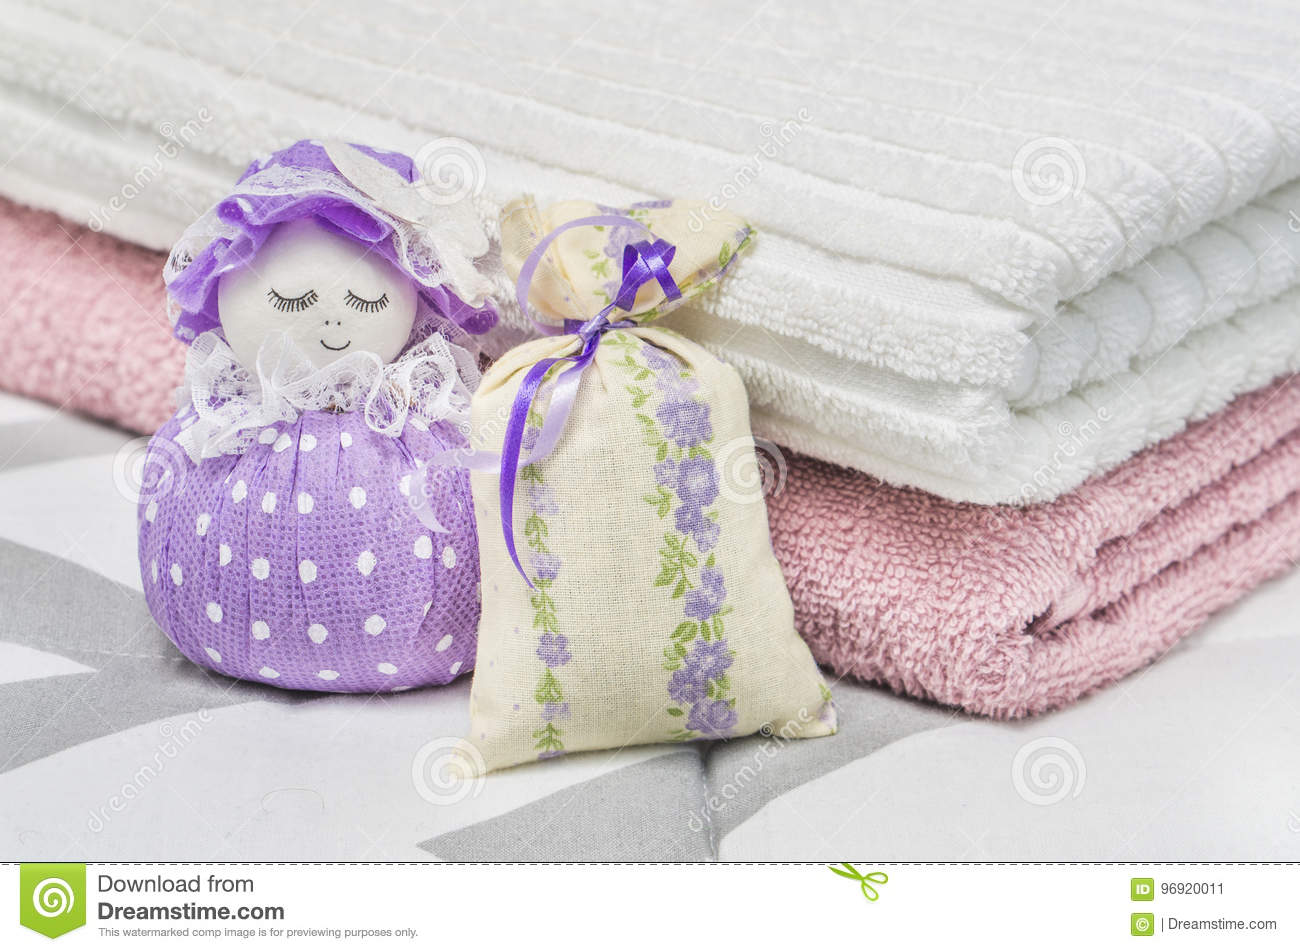 Lavender sachet and scented pouch figure and character representing a girl or woman. Close up to dried lavender in decoration bags